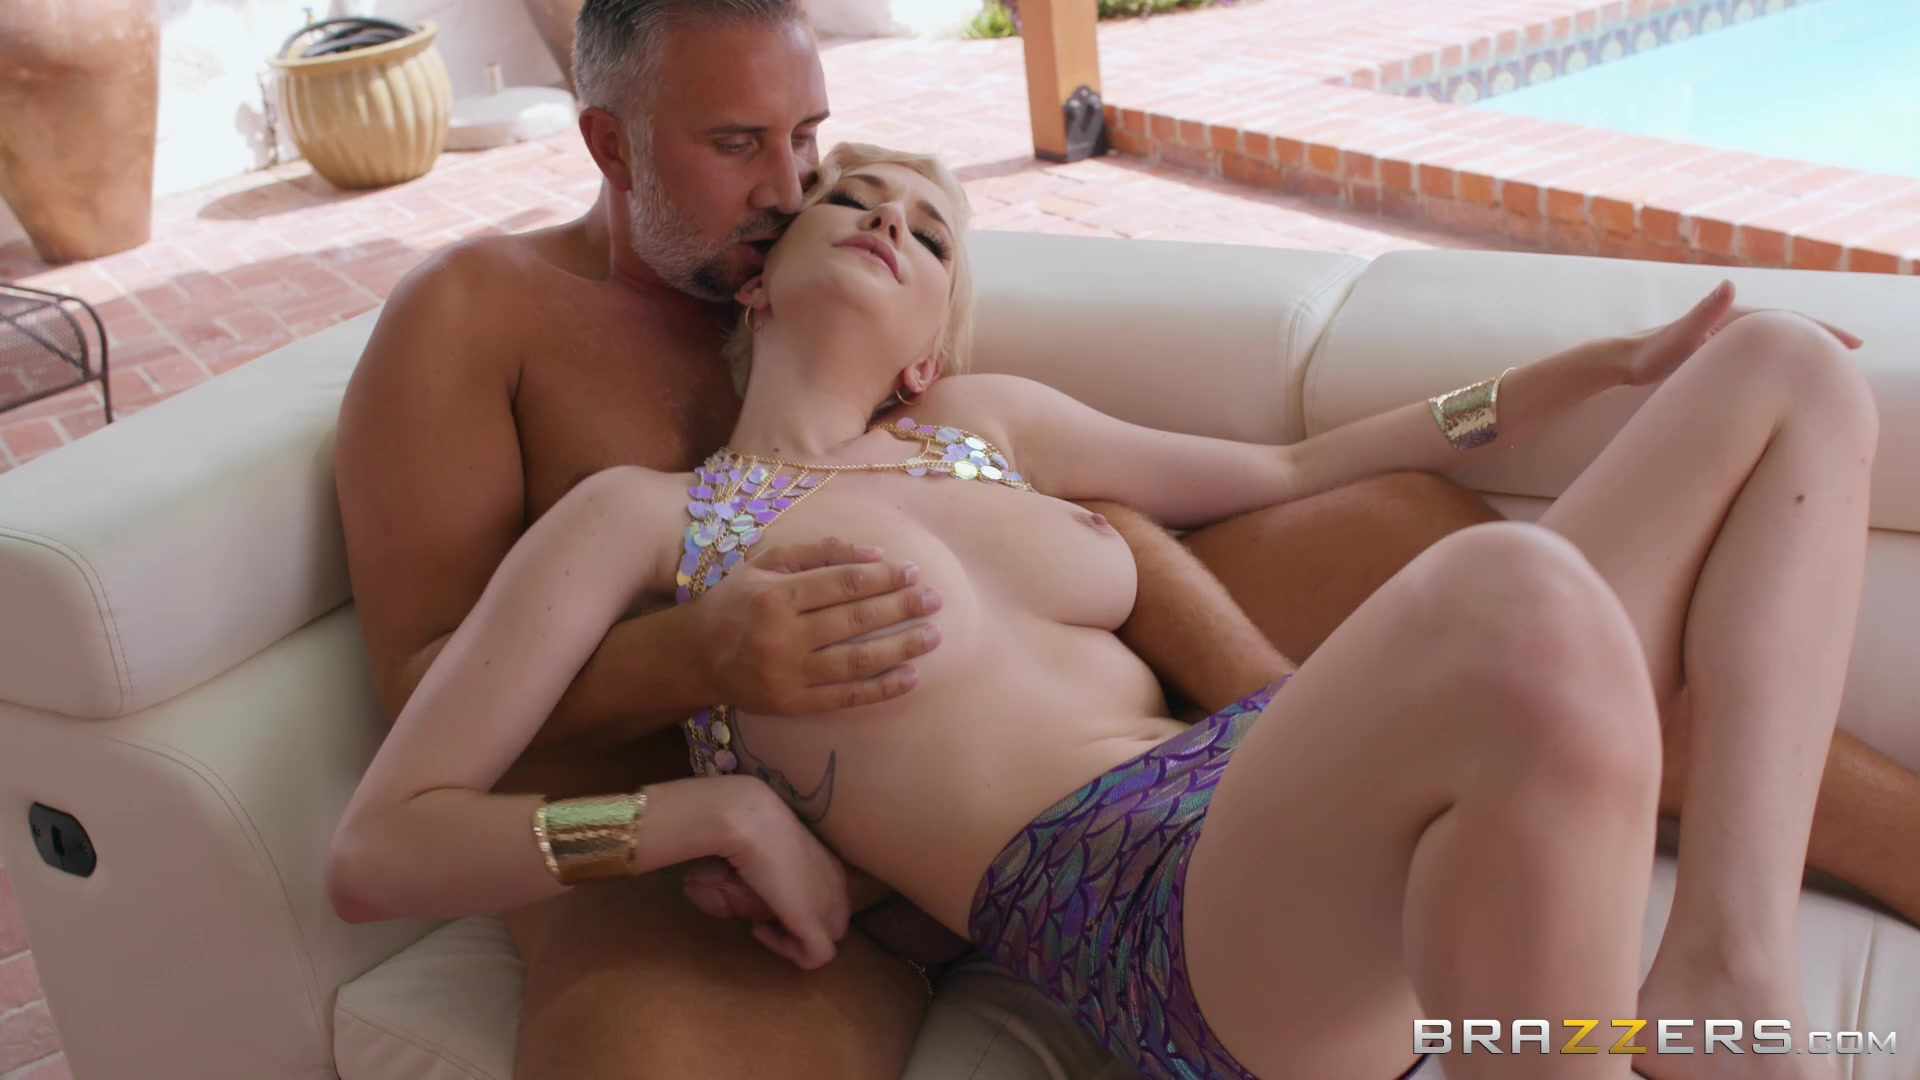 Sweet blonde loads her tiny hole with daddy's big dick